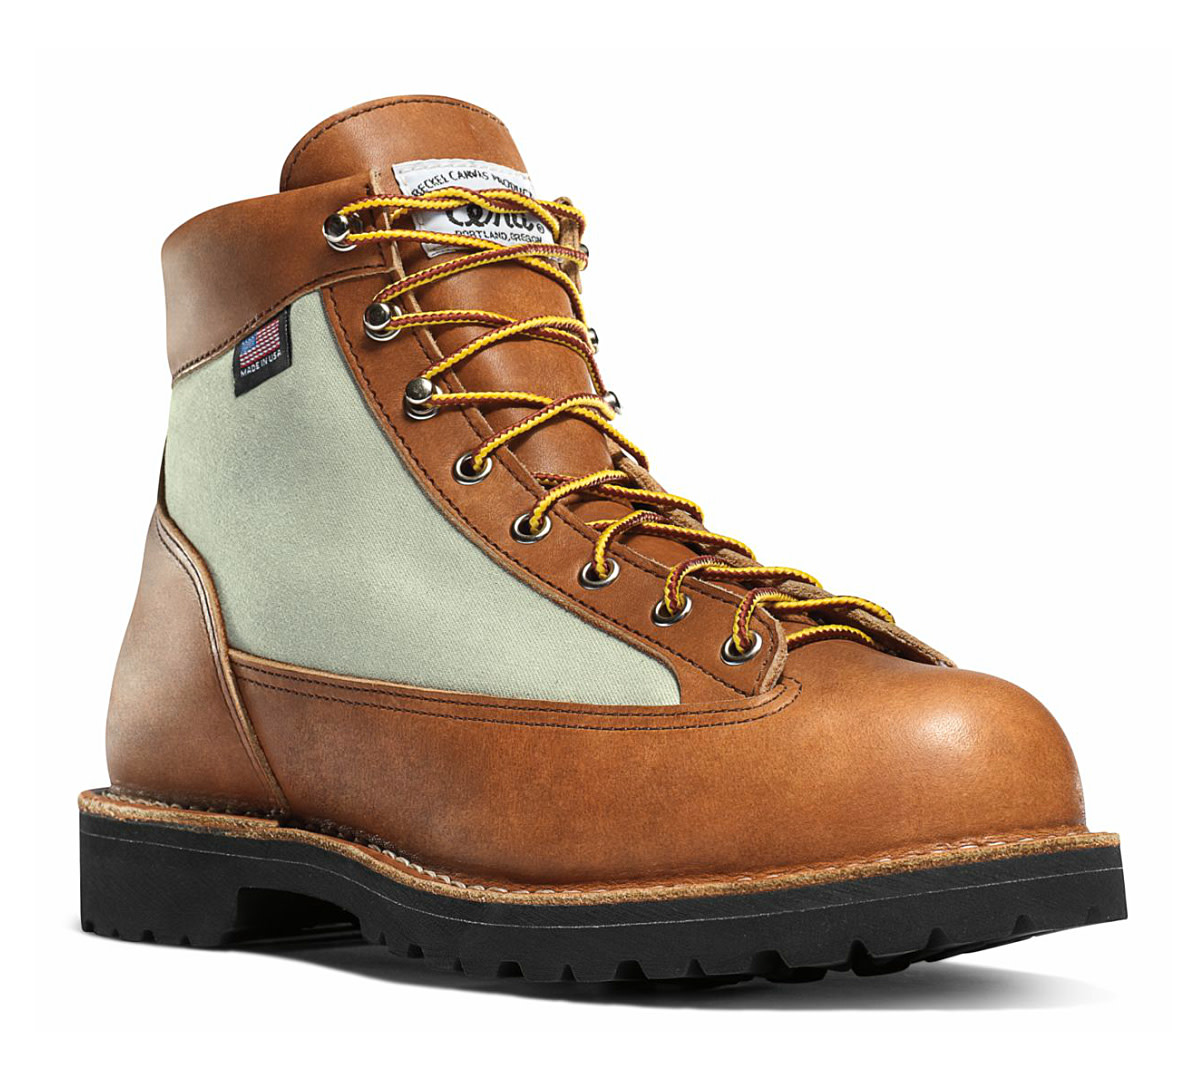 beckel-canvas-products-x-danner-light-beckel-boot-collection-10